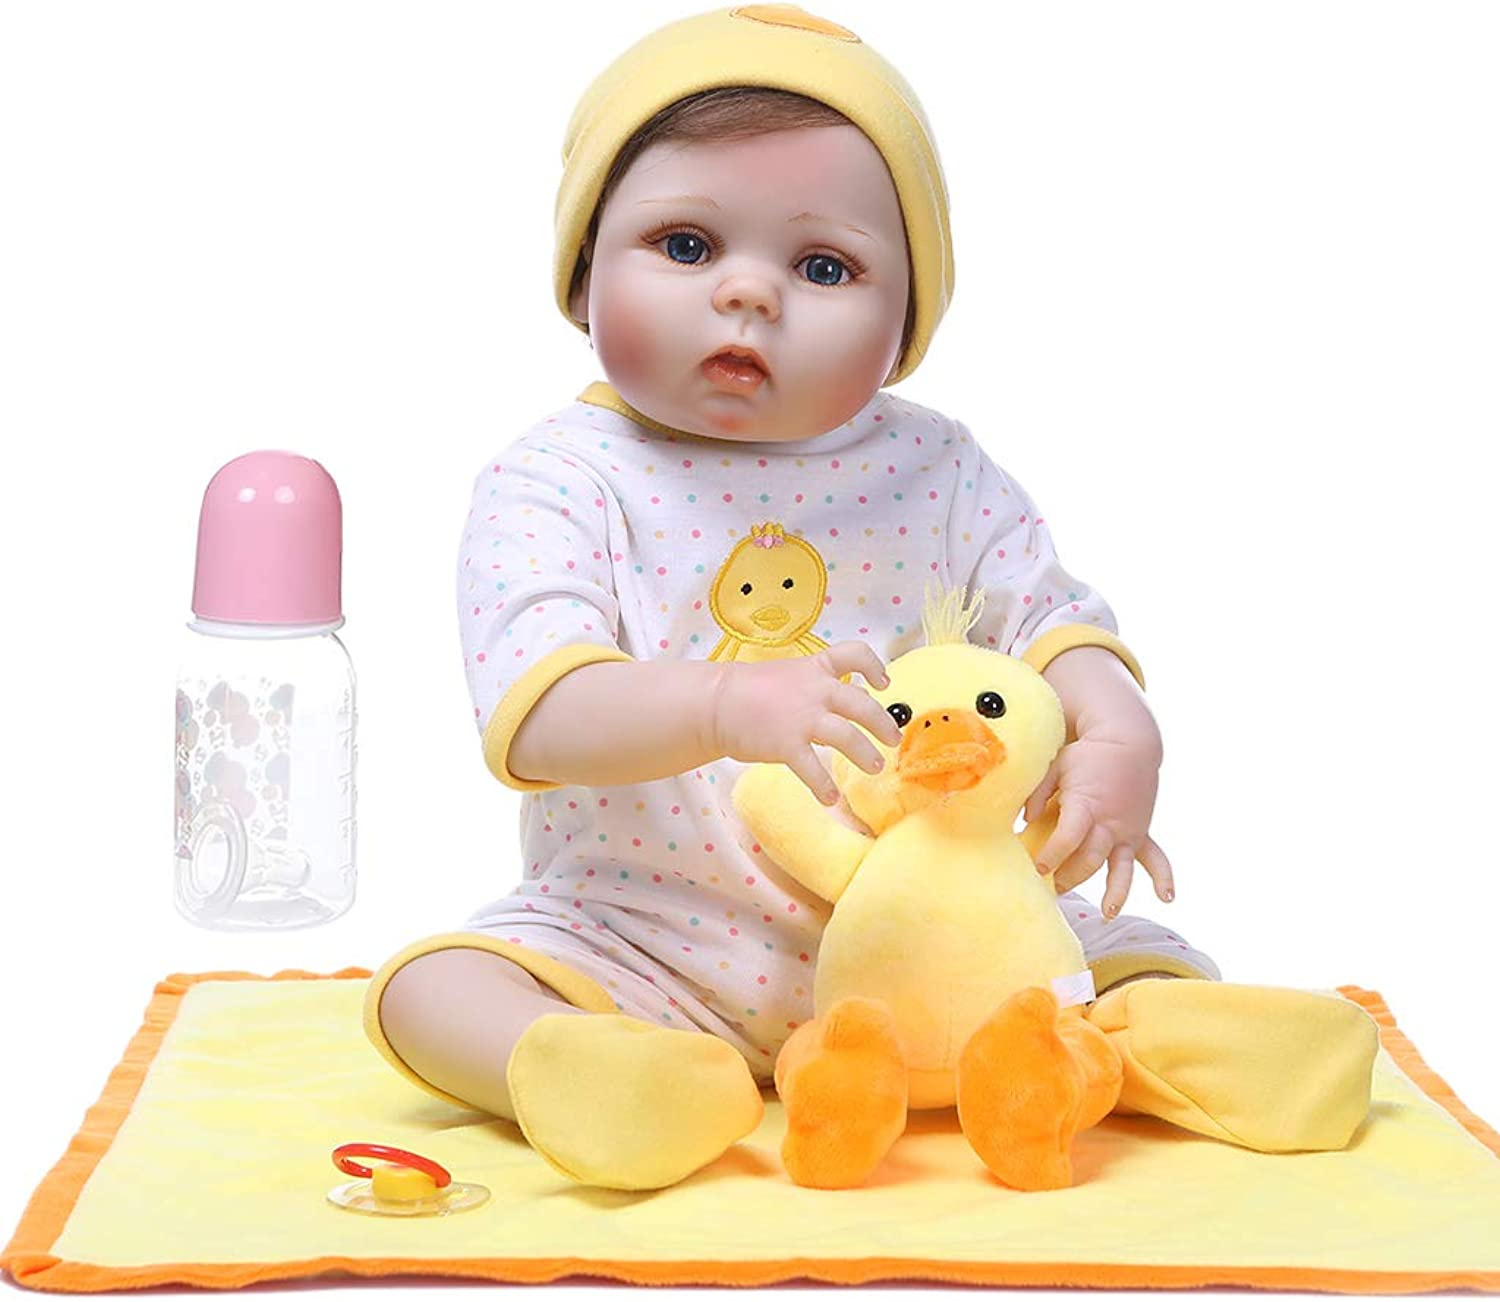 LuohuiFang 22'' Lifelike Handmade Reborn Doll,Realistic Soft Full Silicone Vinyl Newborn Babies Toy& Girl Princess Clothes Duck Pacifier